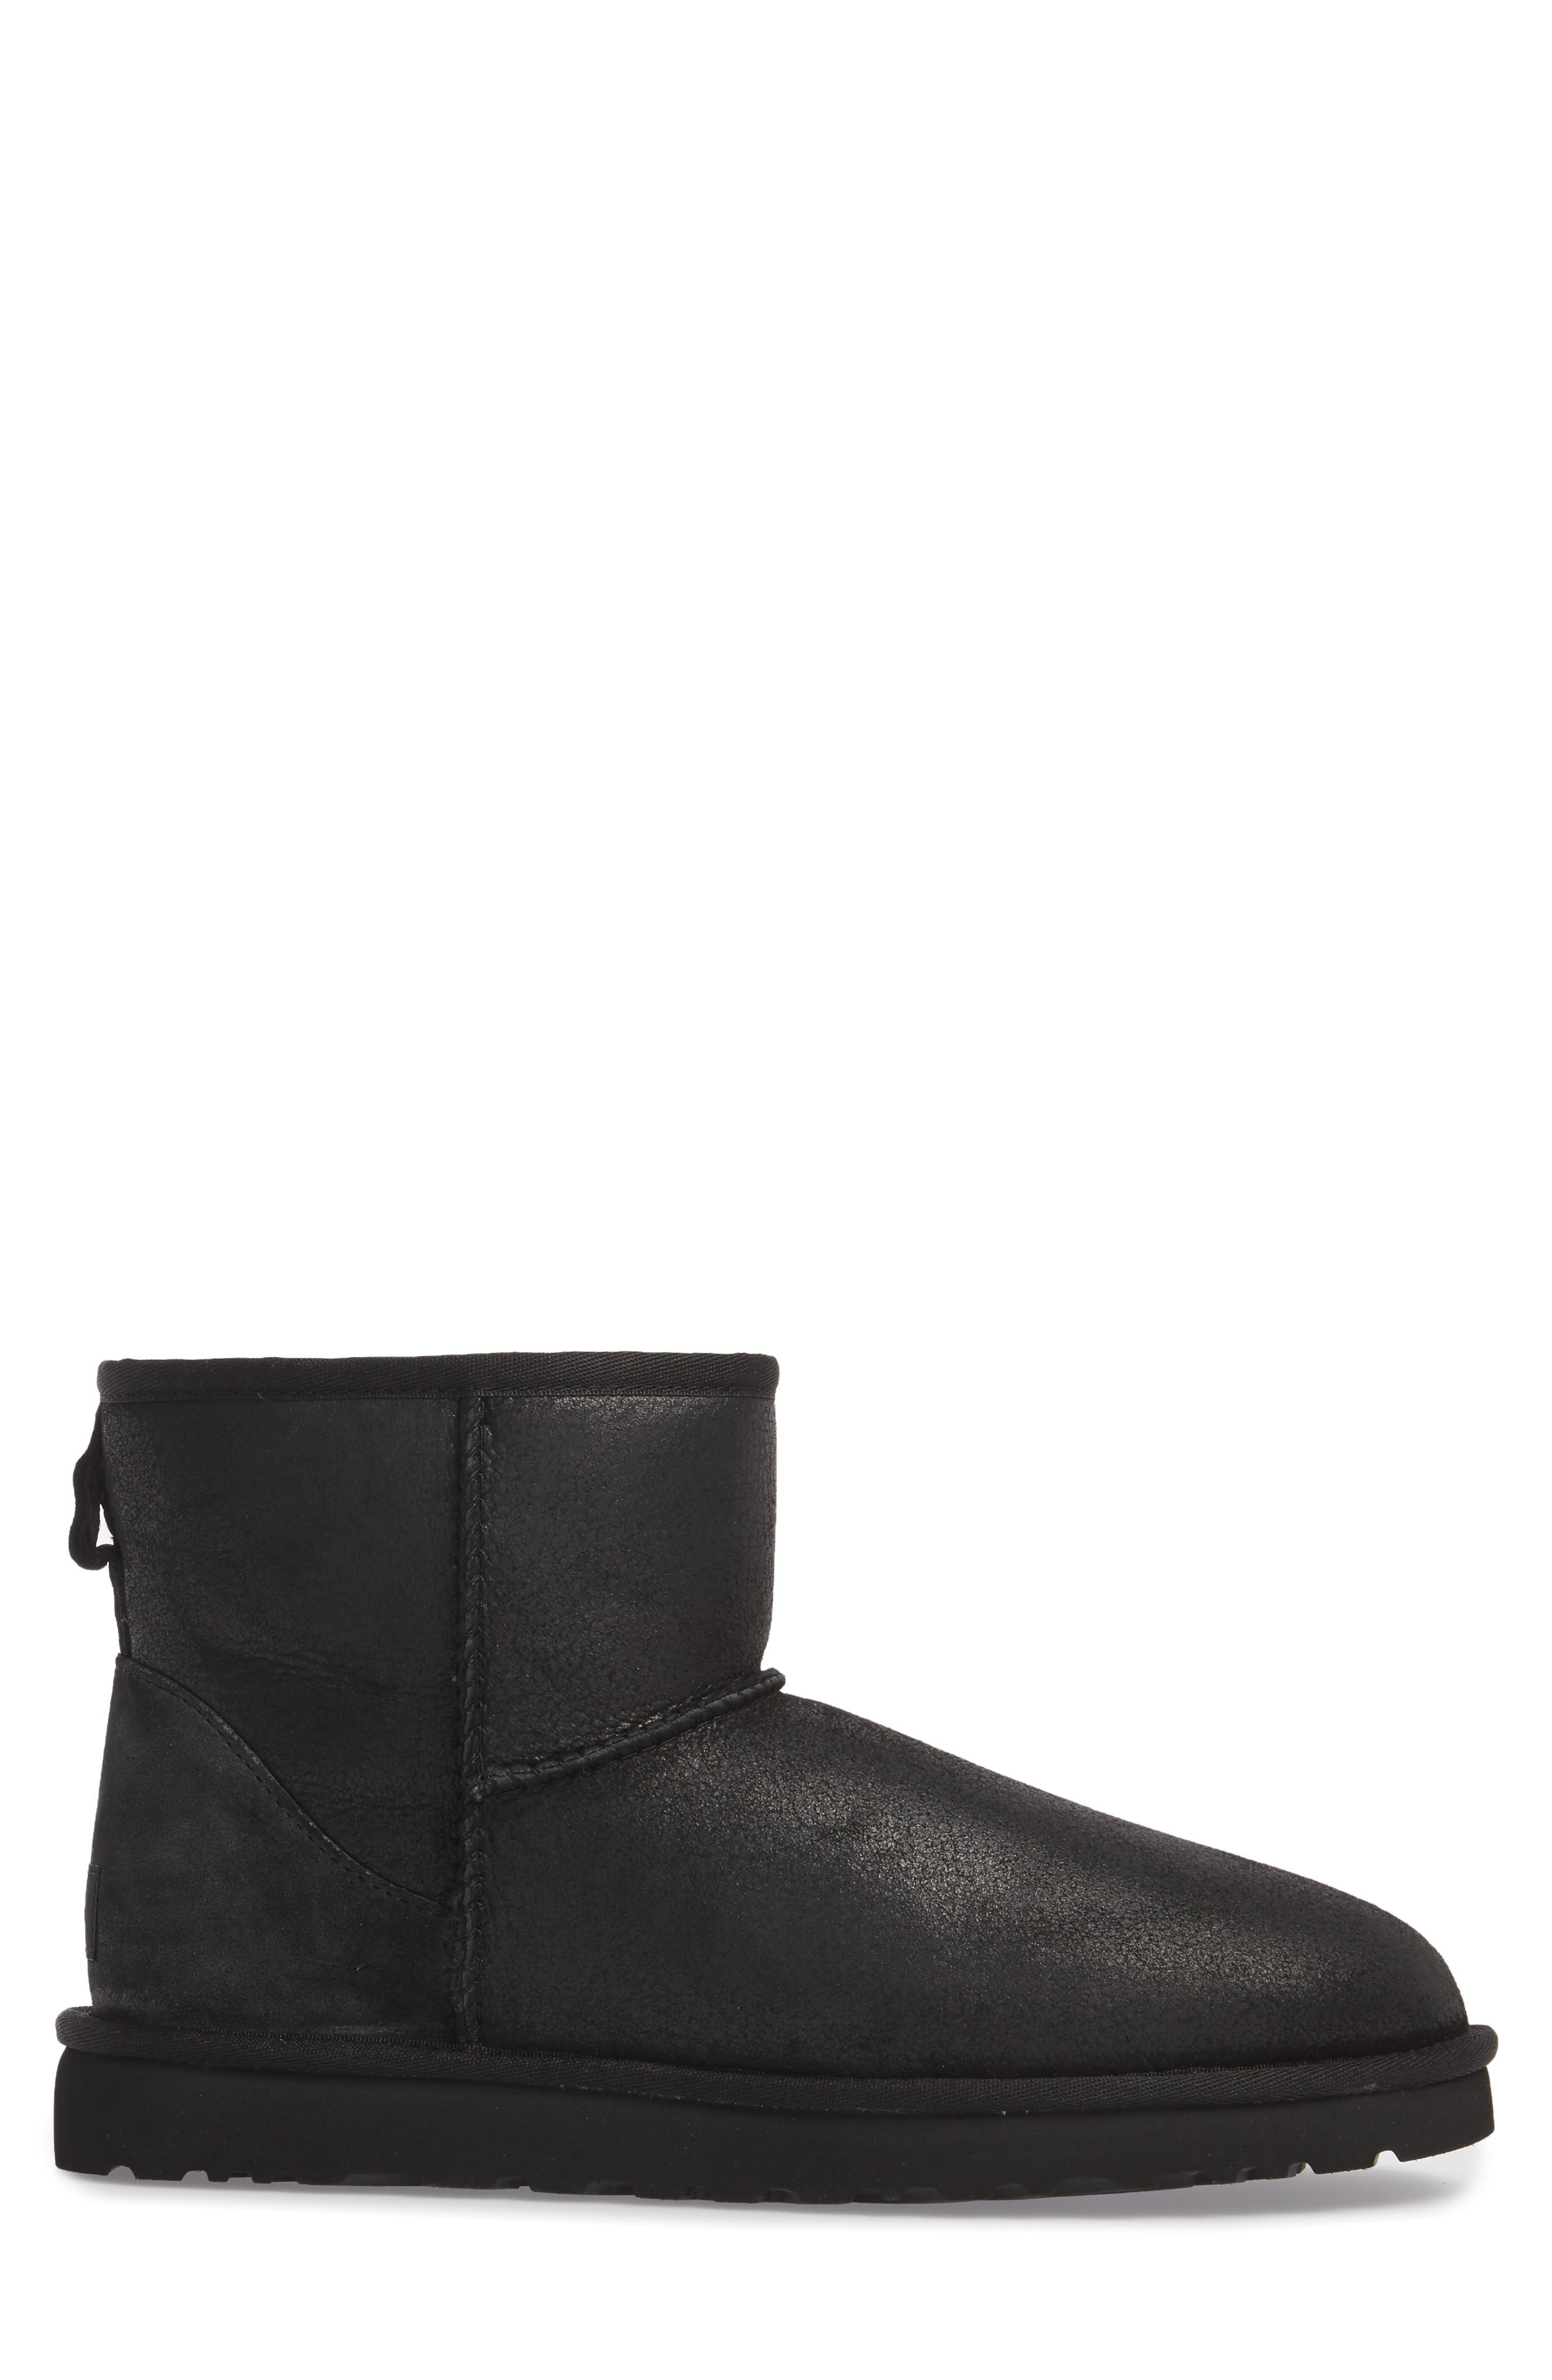 UGG<SUP>®</SUP>, Classic Mini Bomber Boot with Genuine Shearling or UGGpure<sup>™</sup> Lining, Alternate thumbnail 3, color, BOMBER JACKET BLACK